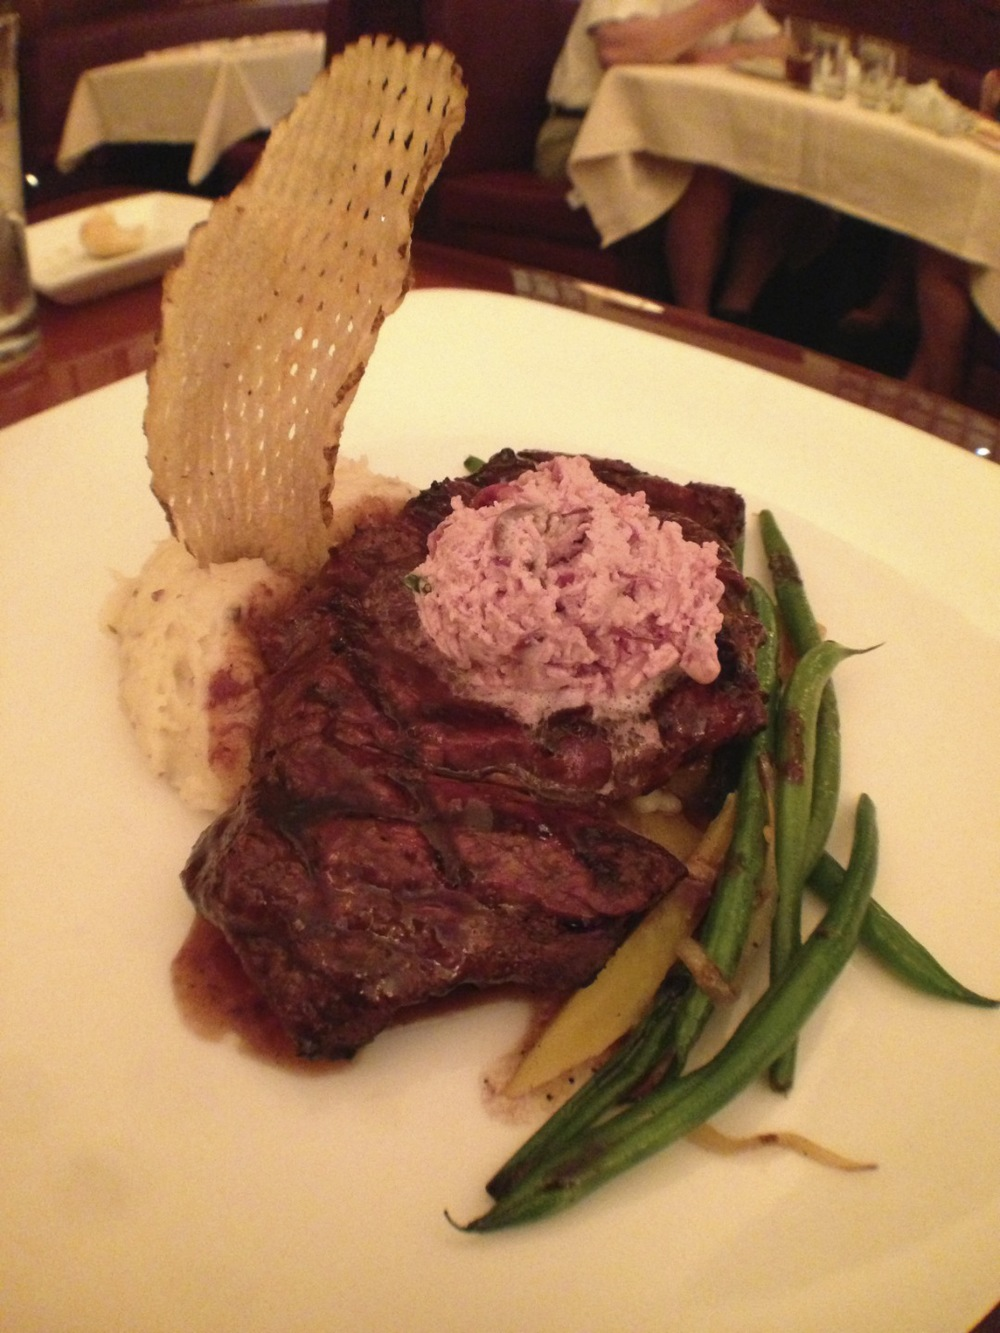 The Filet